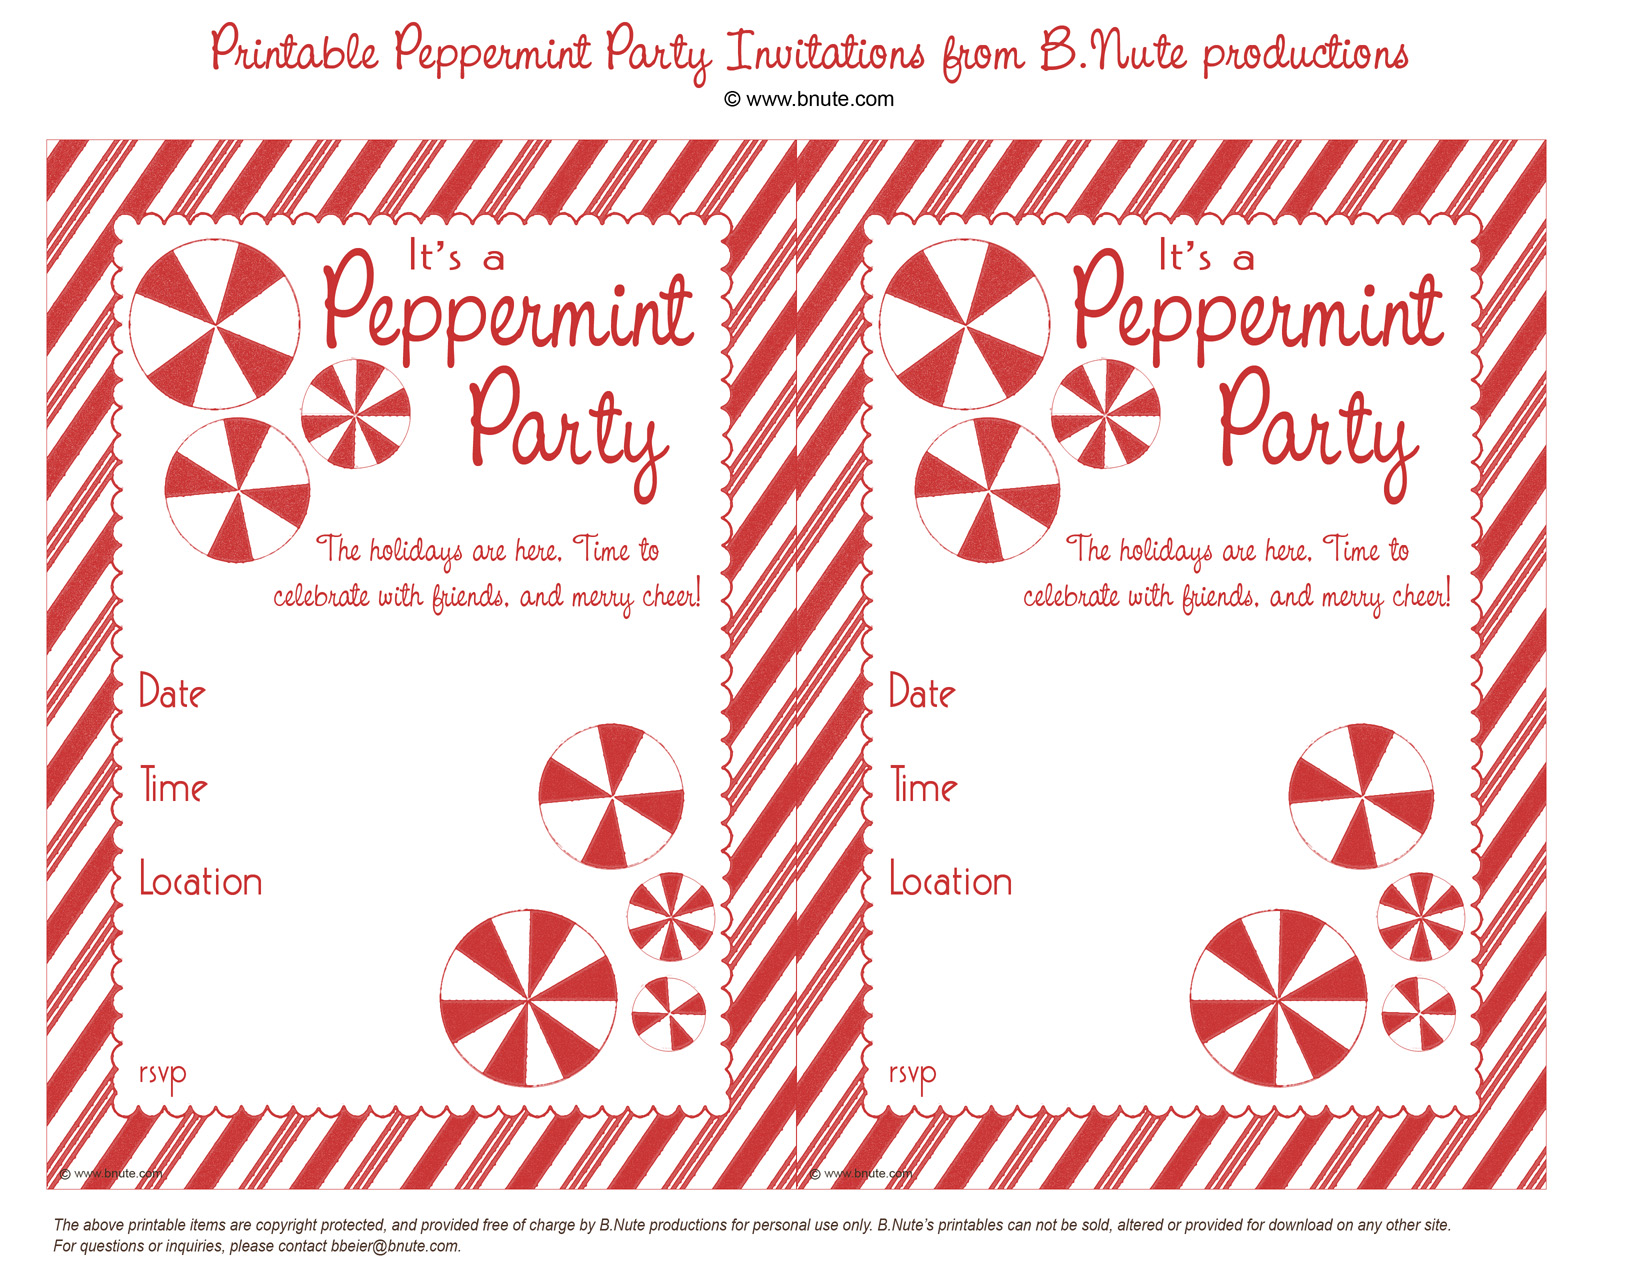 bnute productions free printable peppermint party invitations